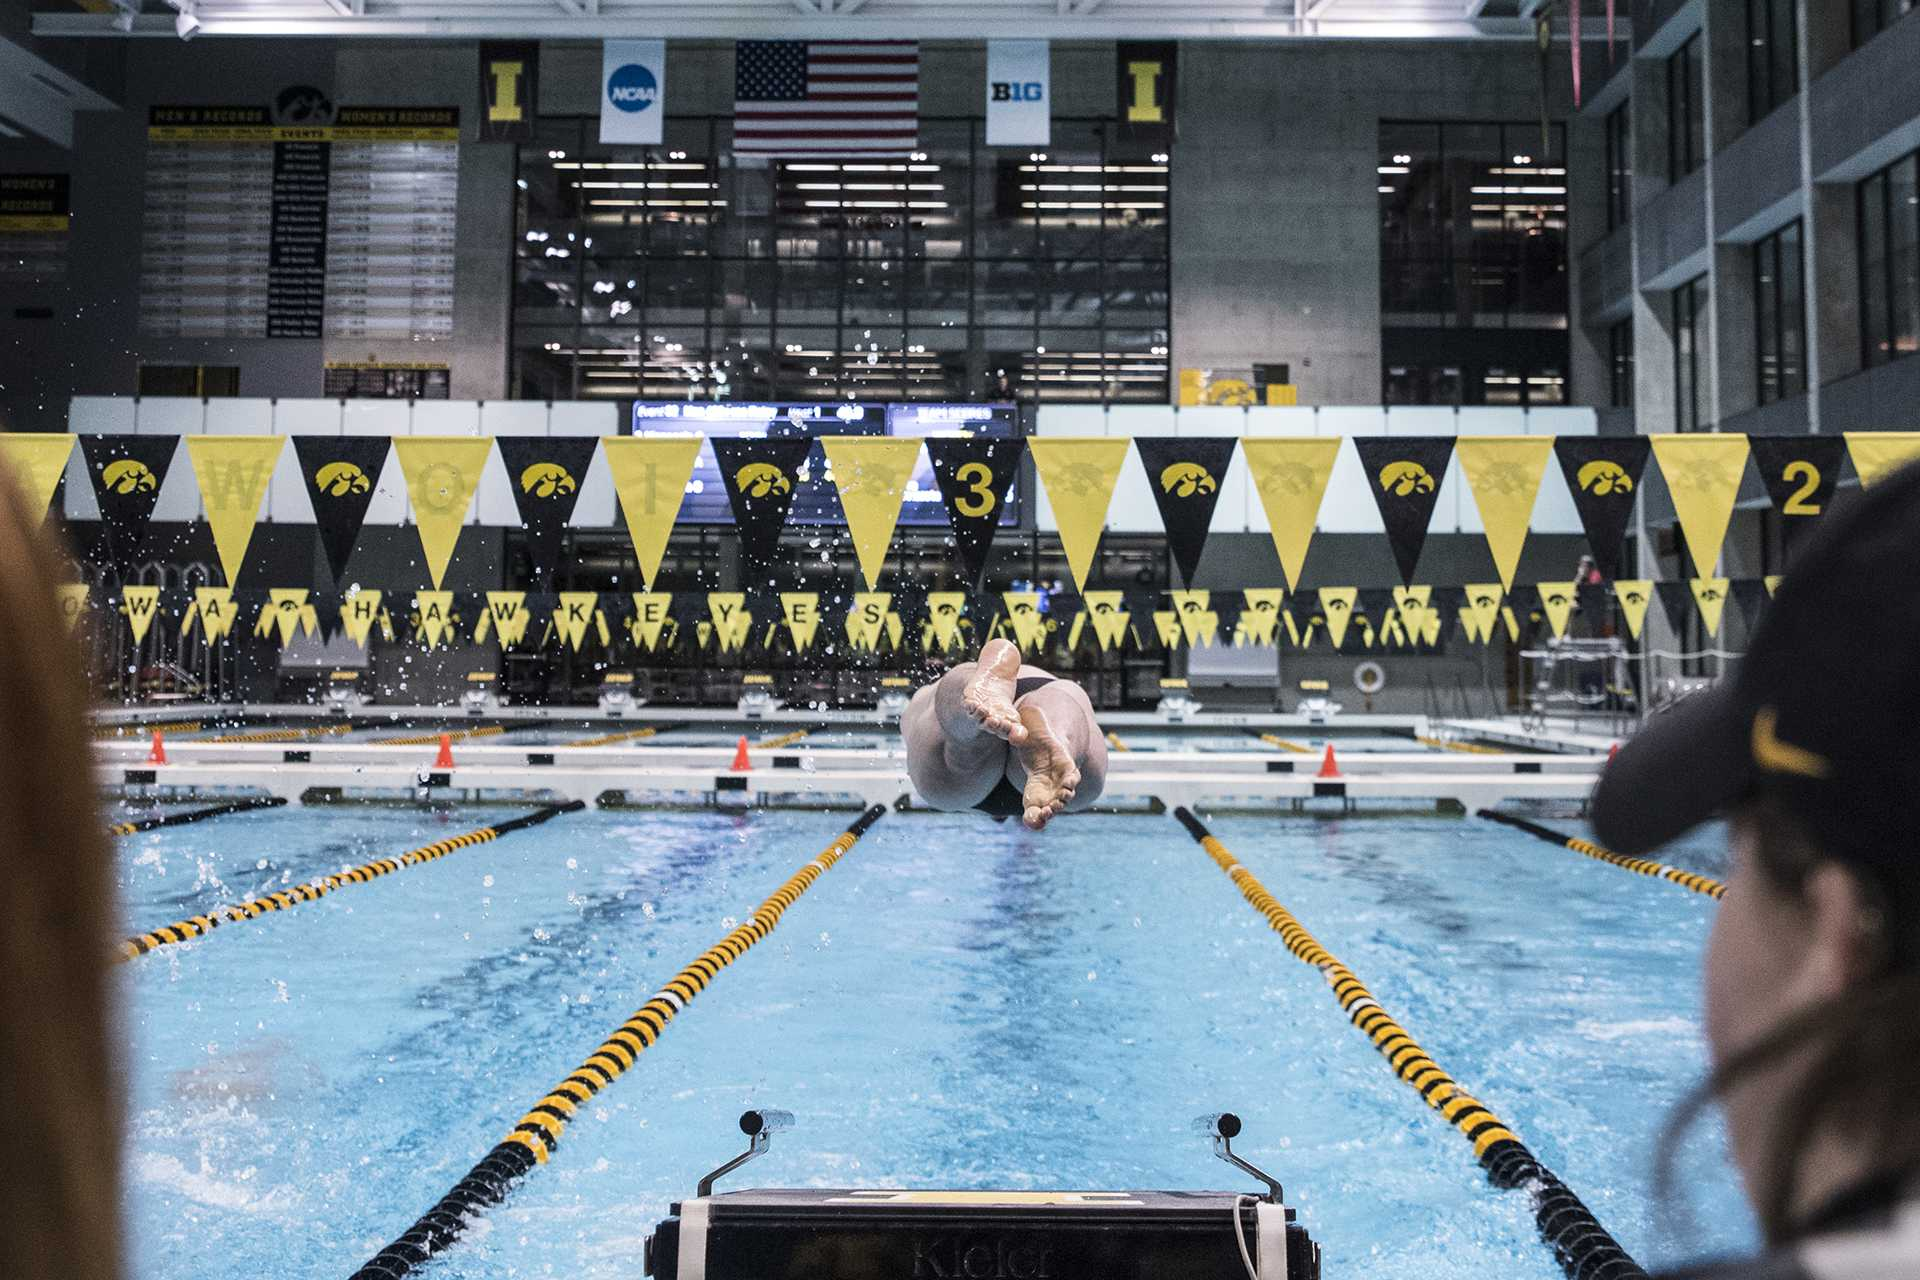 A swimmer dives into the water during the Senior Day meet between Iowa and Minnesota at the Campus Recreation and Wellness Center on Friday, Oct. 27, 2017. The Iowa men's swimming team beat the 21st ranked Minnesota Golden Gophers 168-132. (Ben Smith/The Daily Iowan)